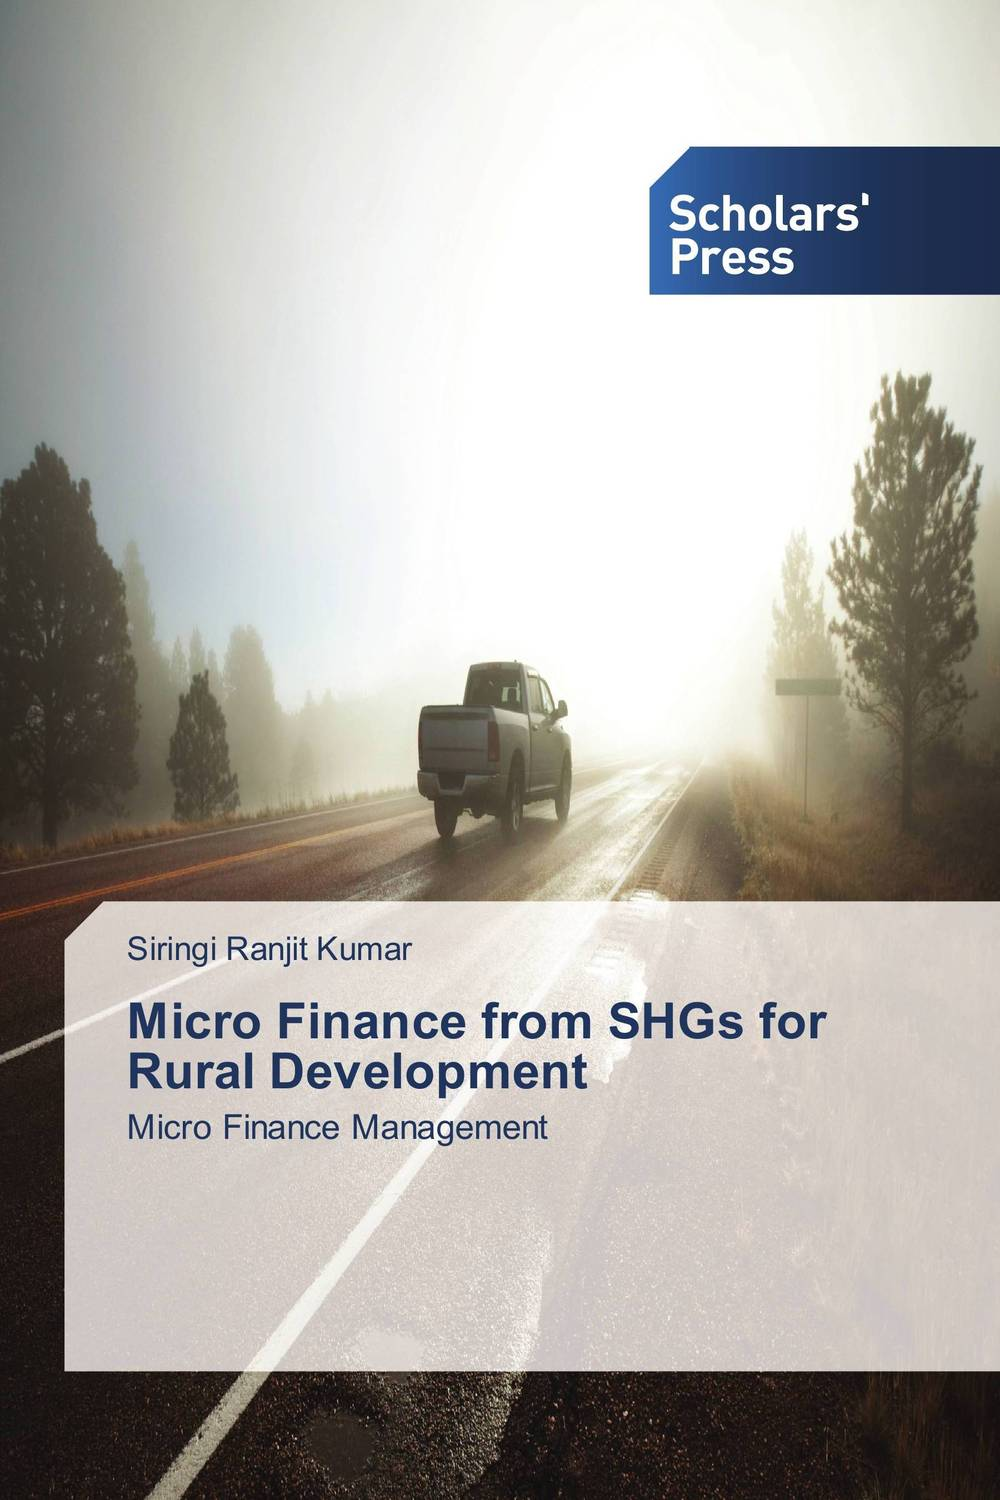 Фото Micro Finance from SHGs for Rural Development finance and investments